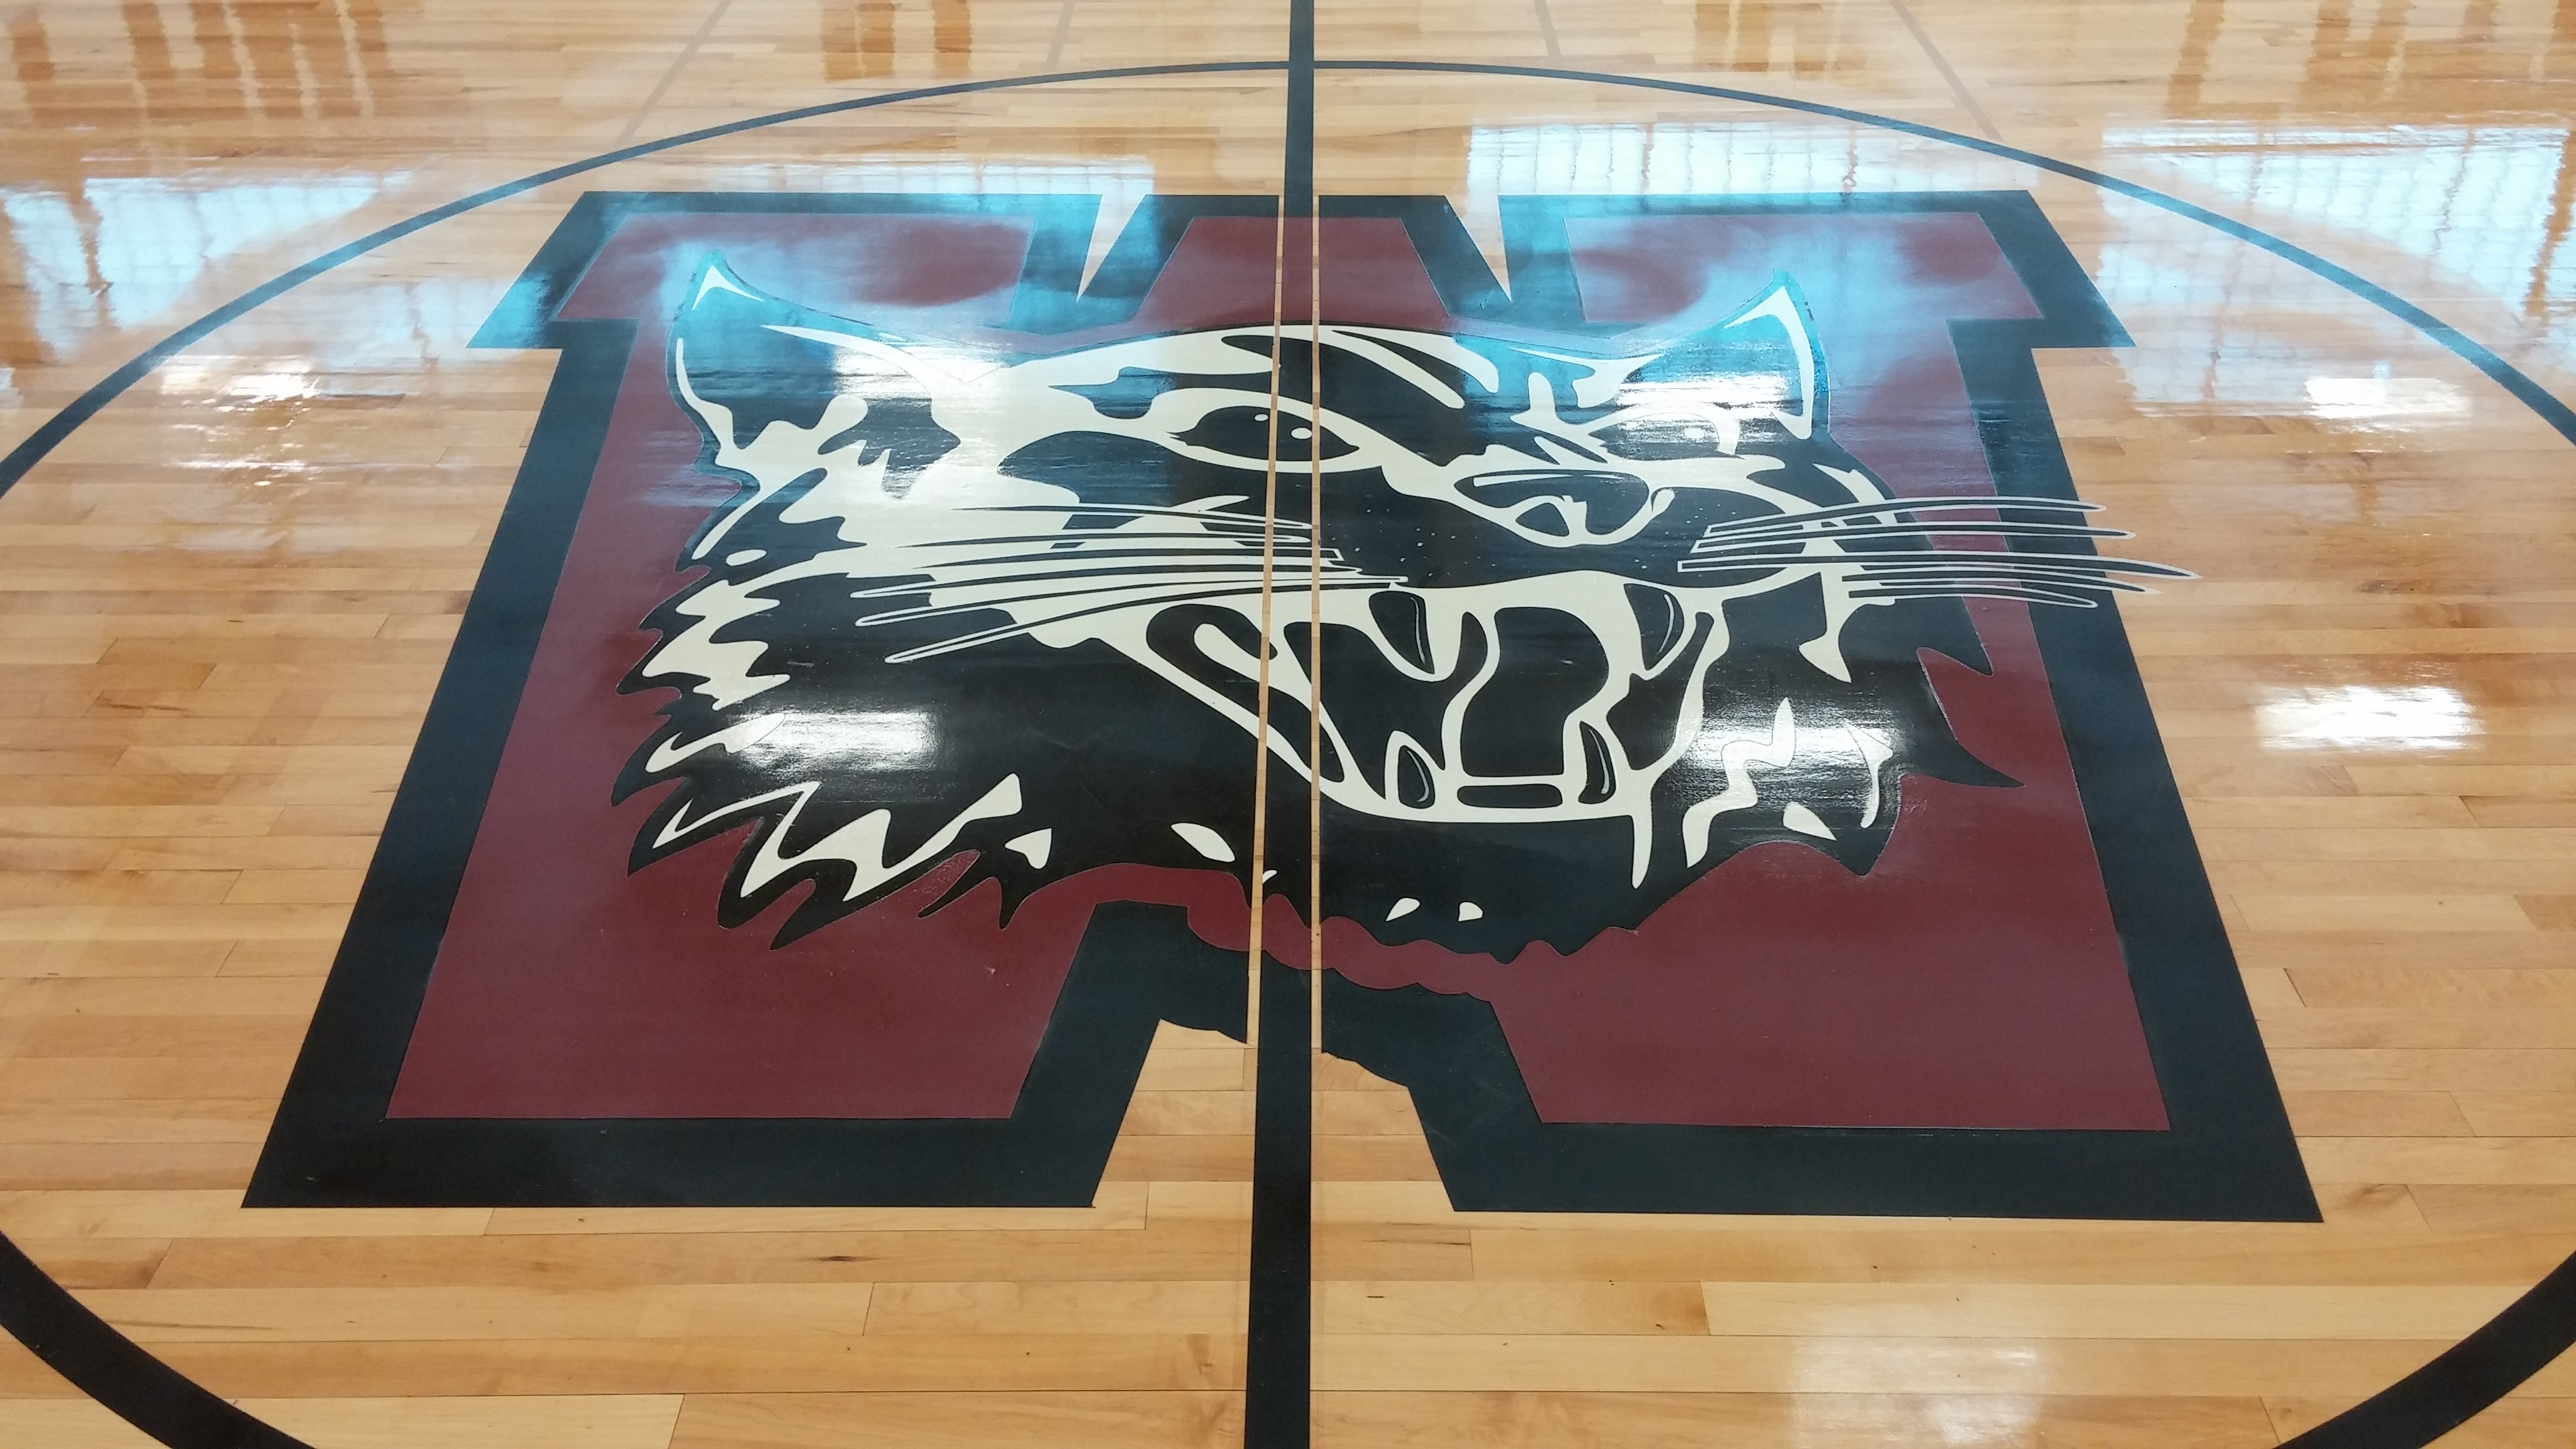 Logo - Wildcat - Weston High School - Weston MA.JPG